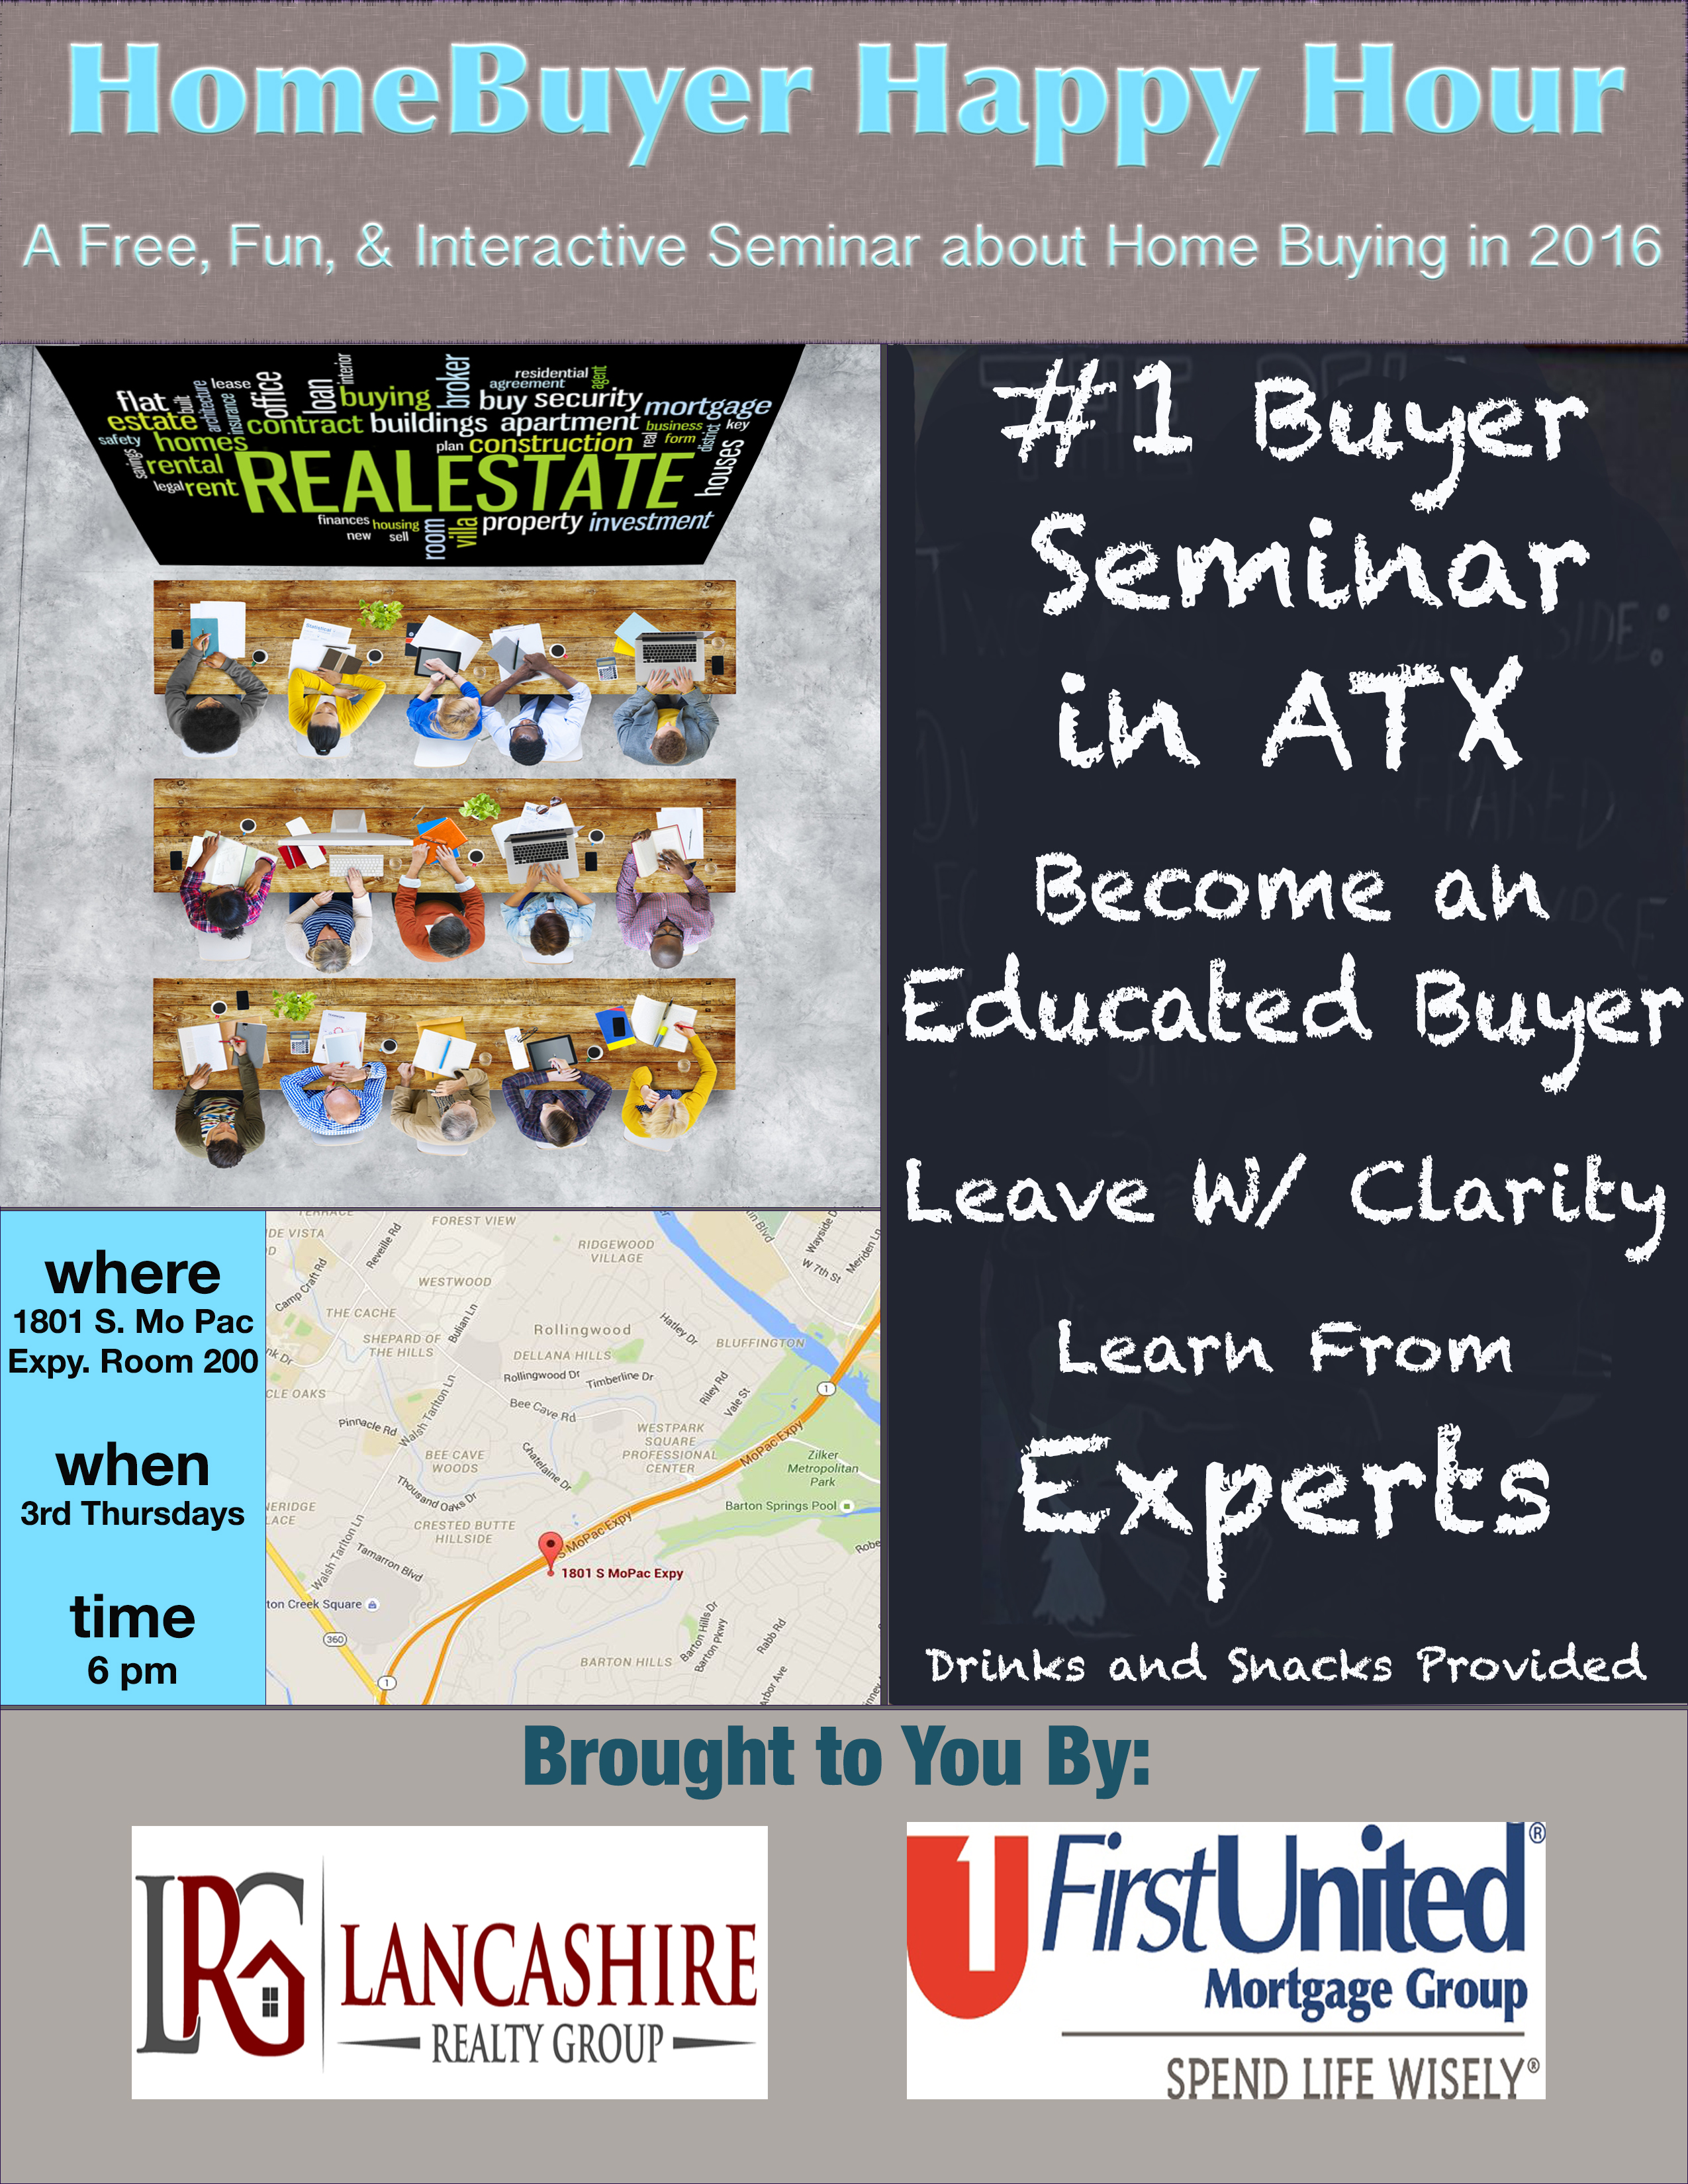 HomeBuyer Happer Hour. a Free fun and interactive seminar about home buying in 2016.